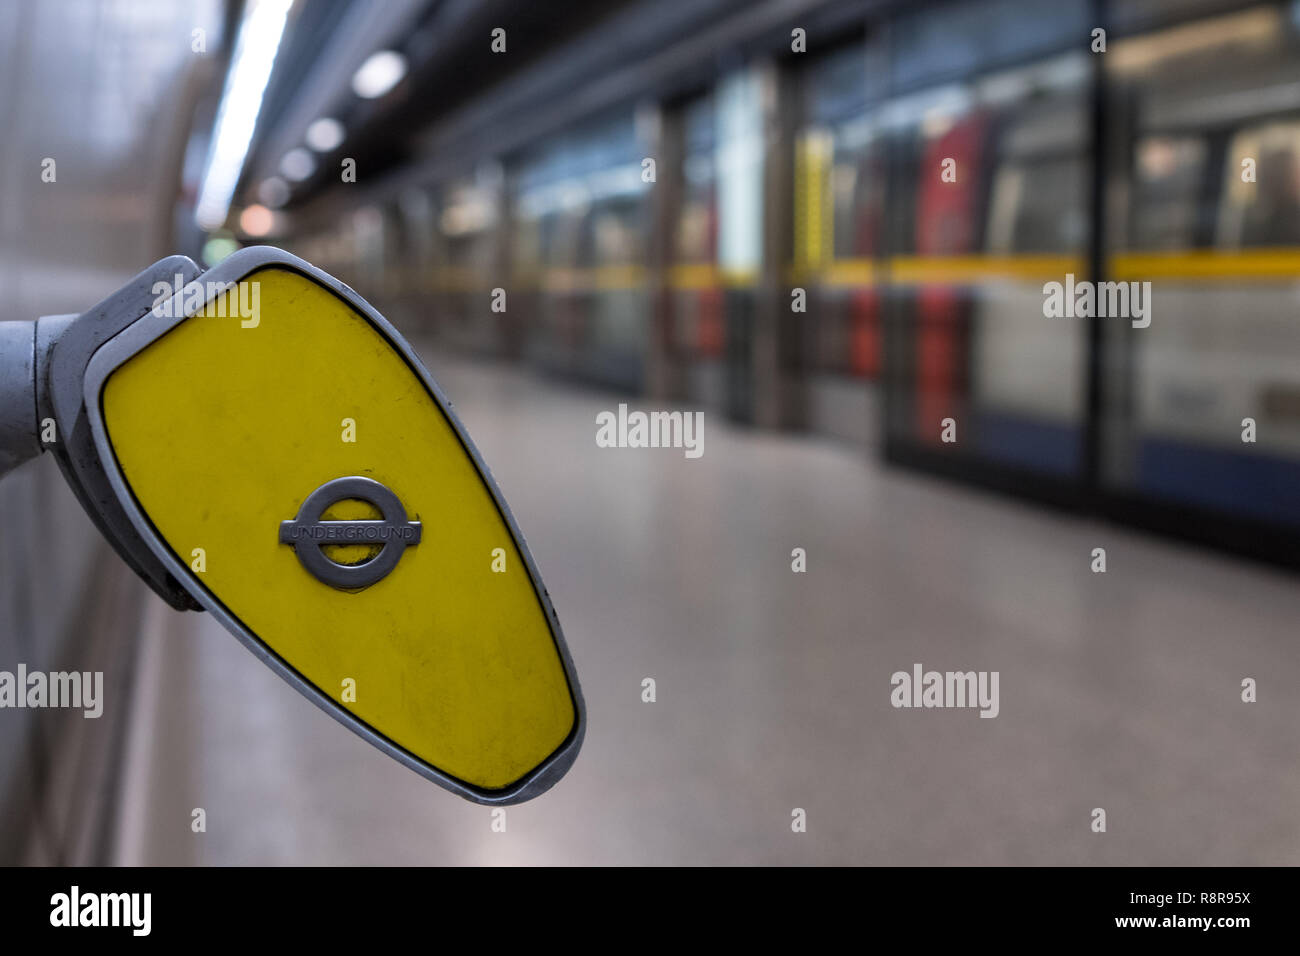 In foreground, end of handrail at Southwark underground station, London showing TFL roundel. In background blurred train arrives on the platform. - Stock Image